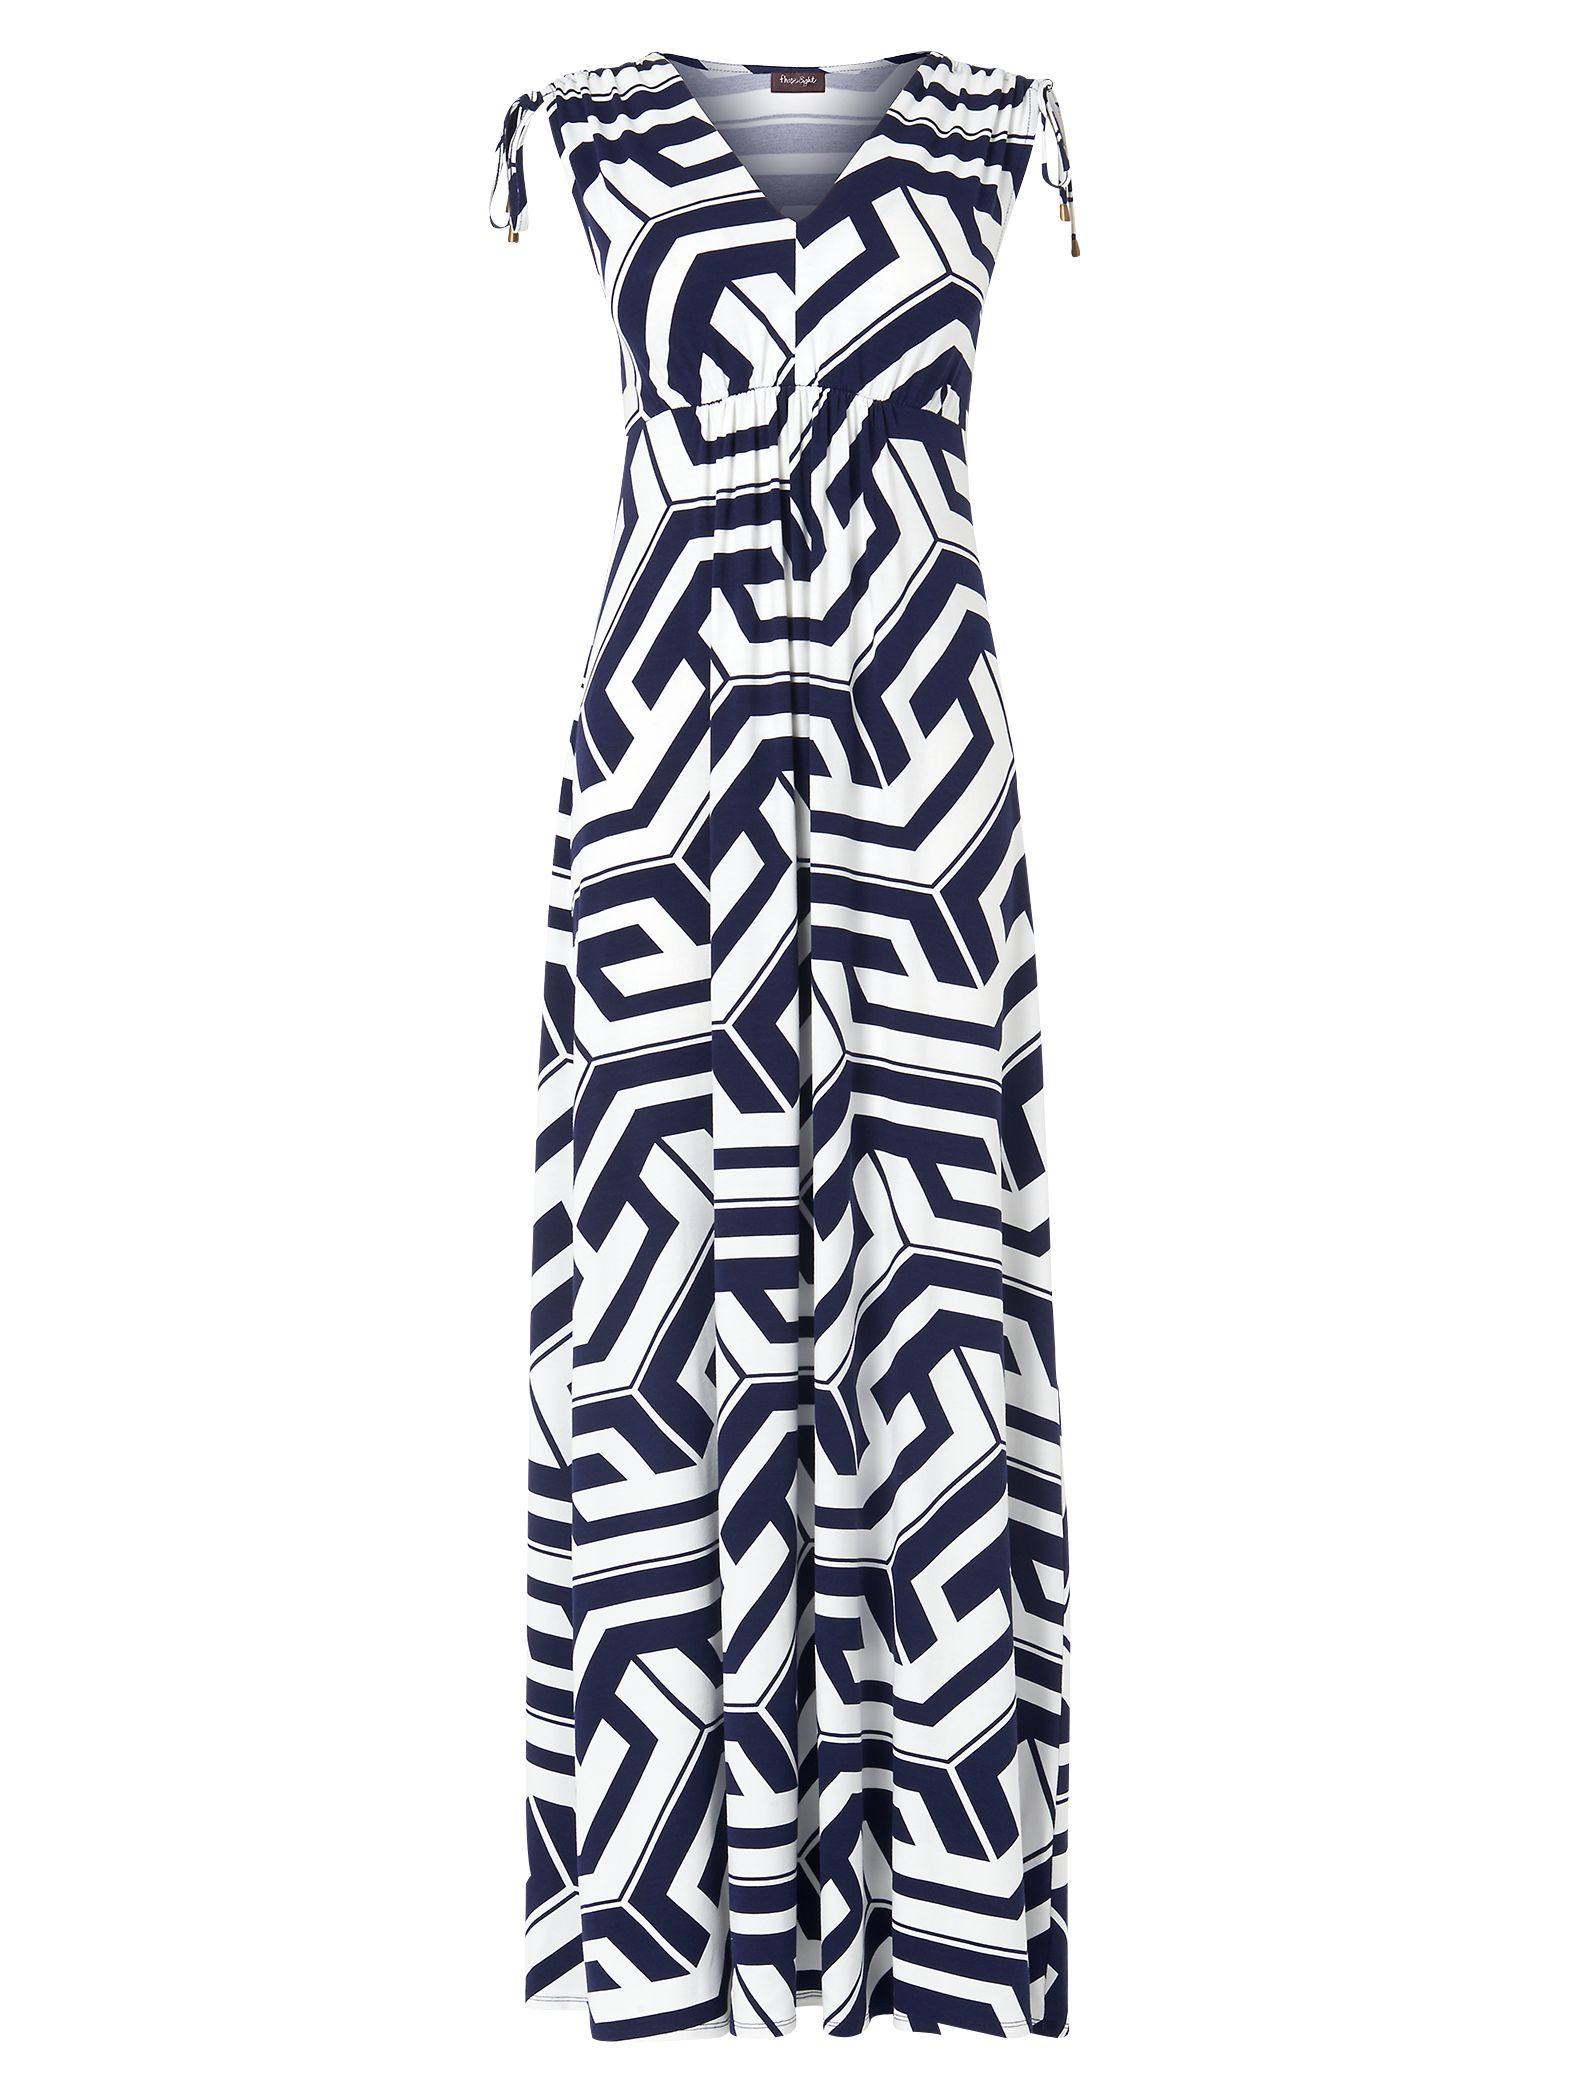 phase eight grace graphic maxi dress navy/ivory, phase, eight, grace, graphic, maxi, dress, navy/ivory, phase eight, 18|14|16|12|10|8, women, womens dresses, special offers, womenswear offers, 20% off full price phase eight, fashion magazine, brands l-z, inactive womenswear, 1852117